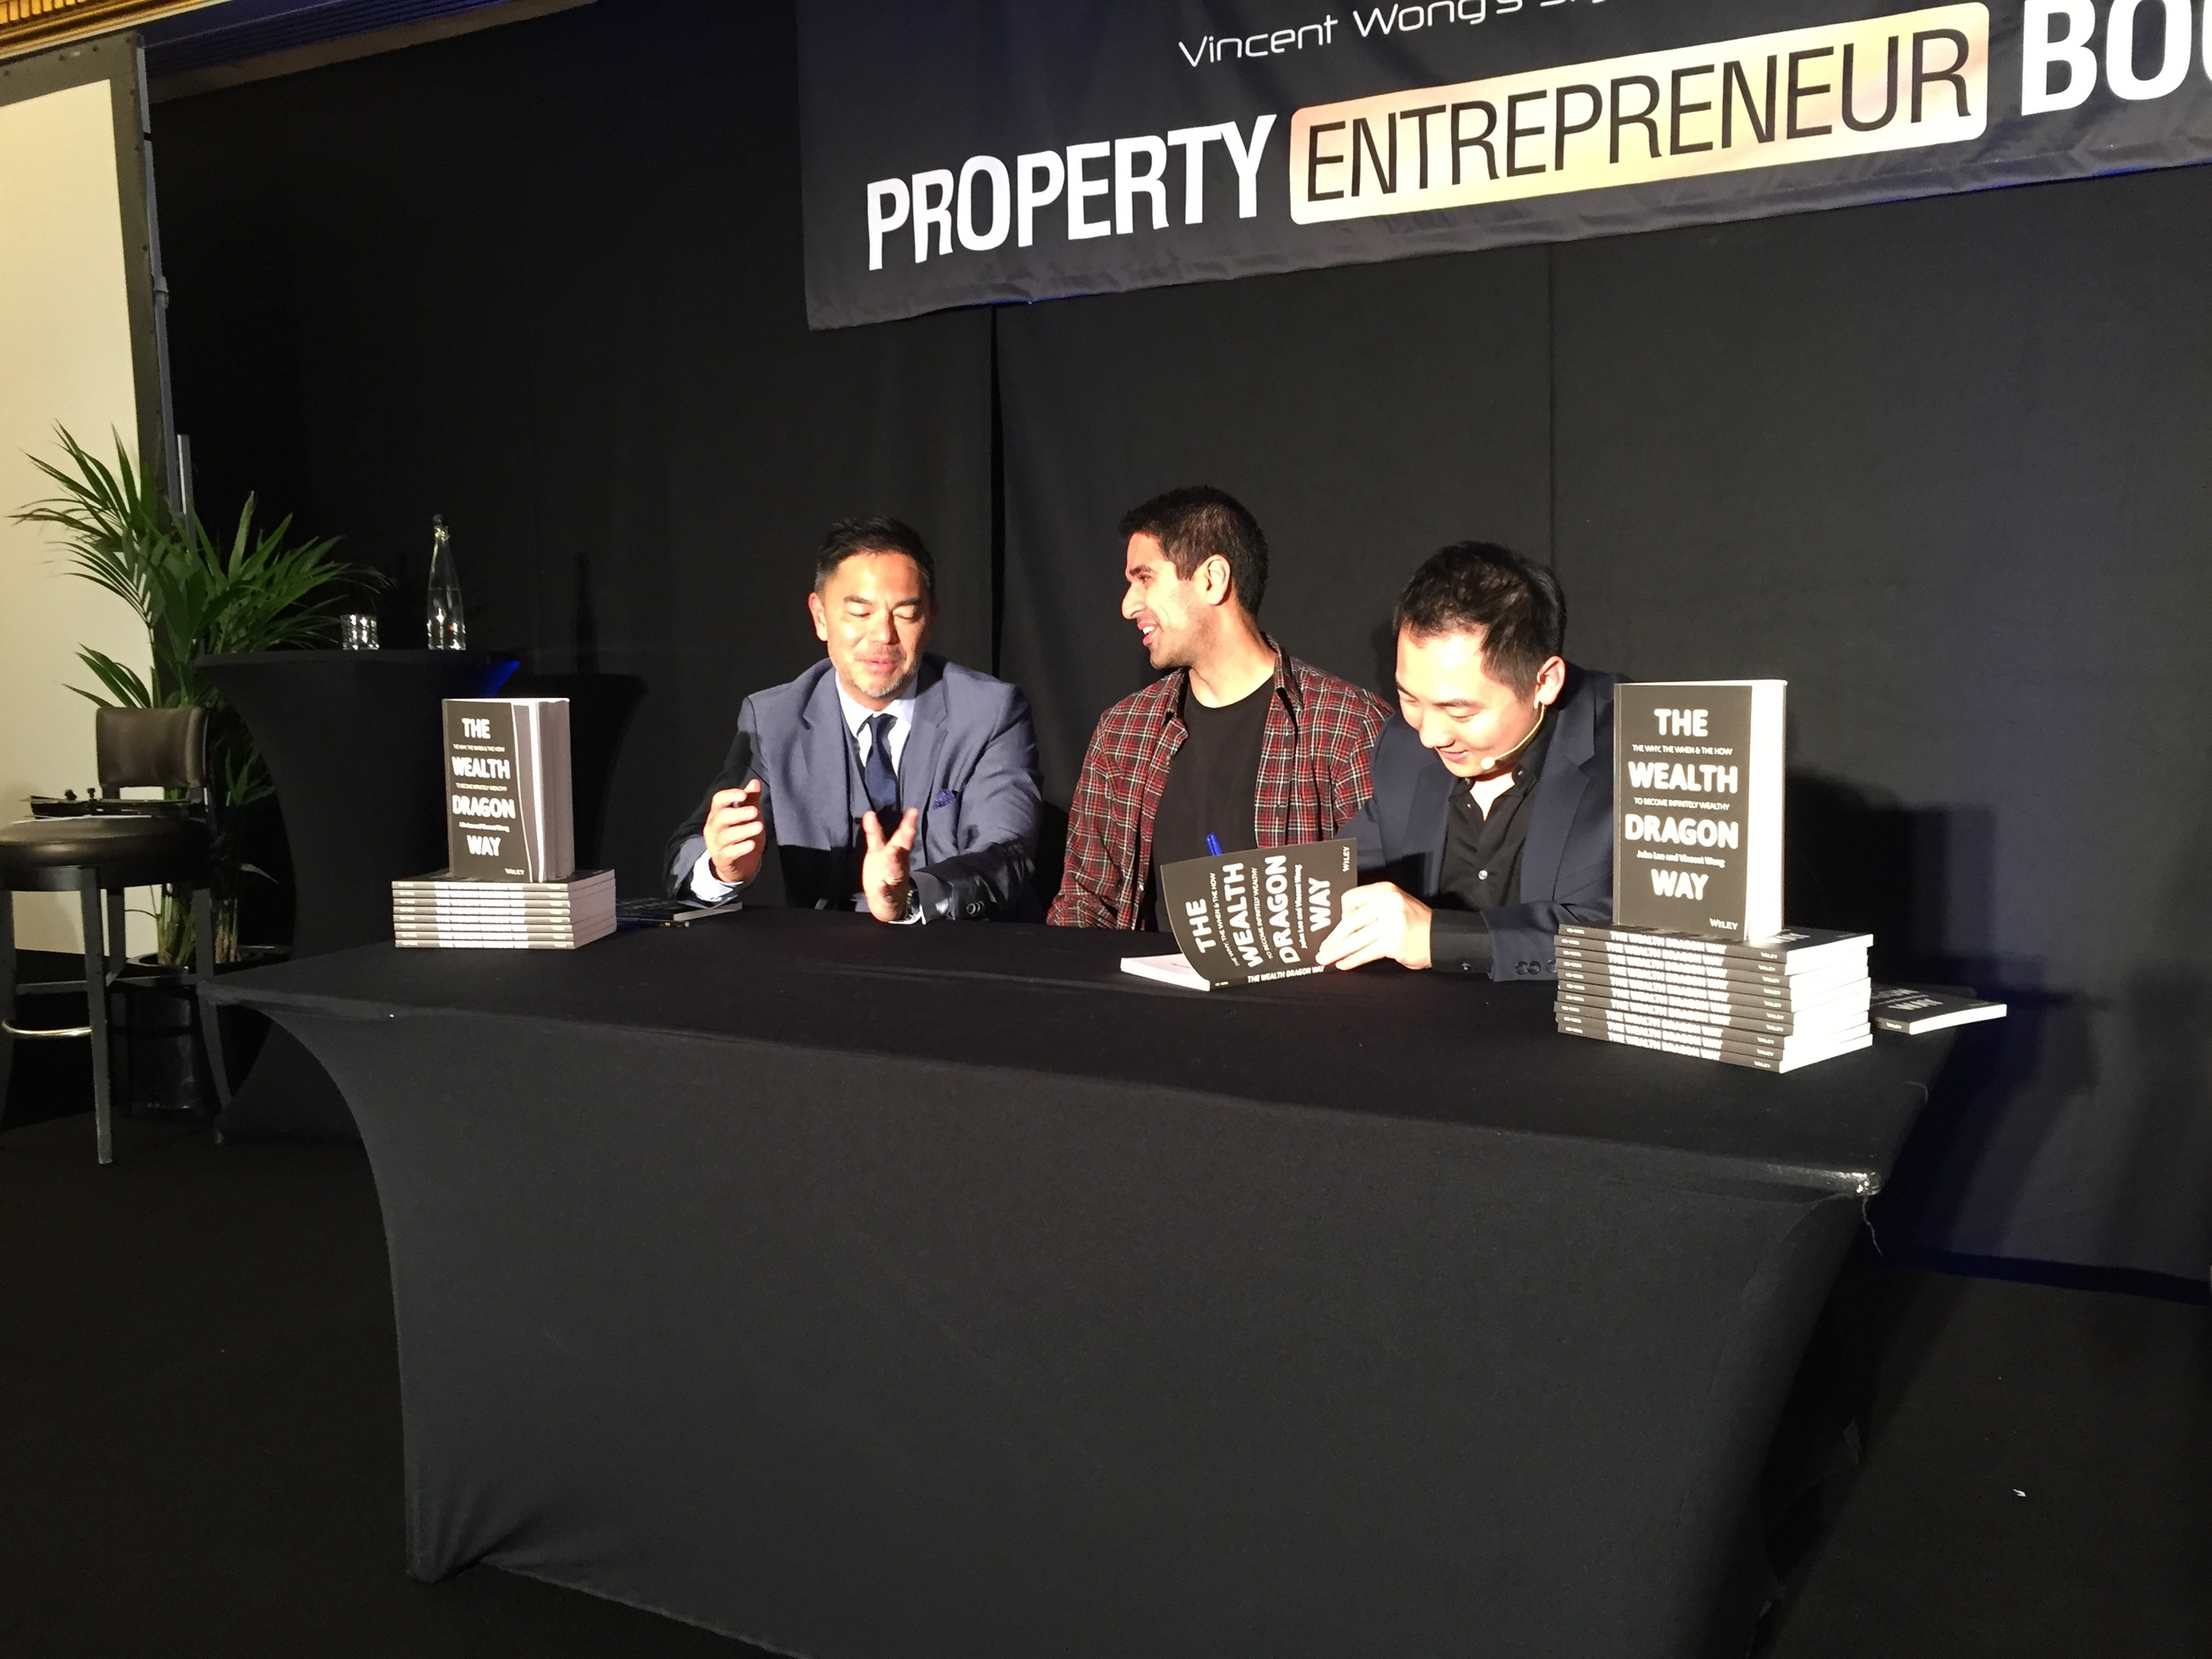 Me with the Wealth Dragons: Vincent Wong (left) and John Lee (right).